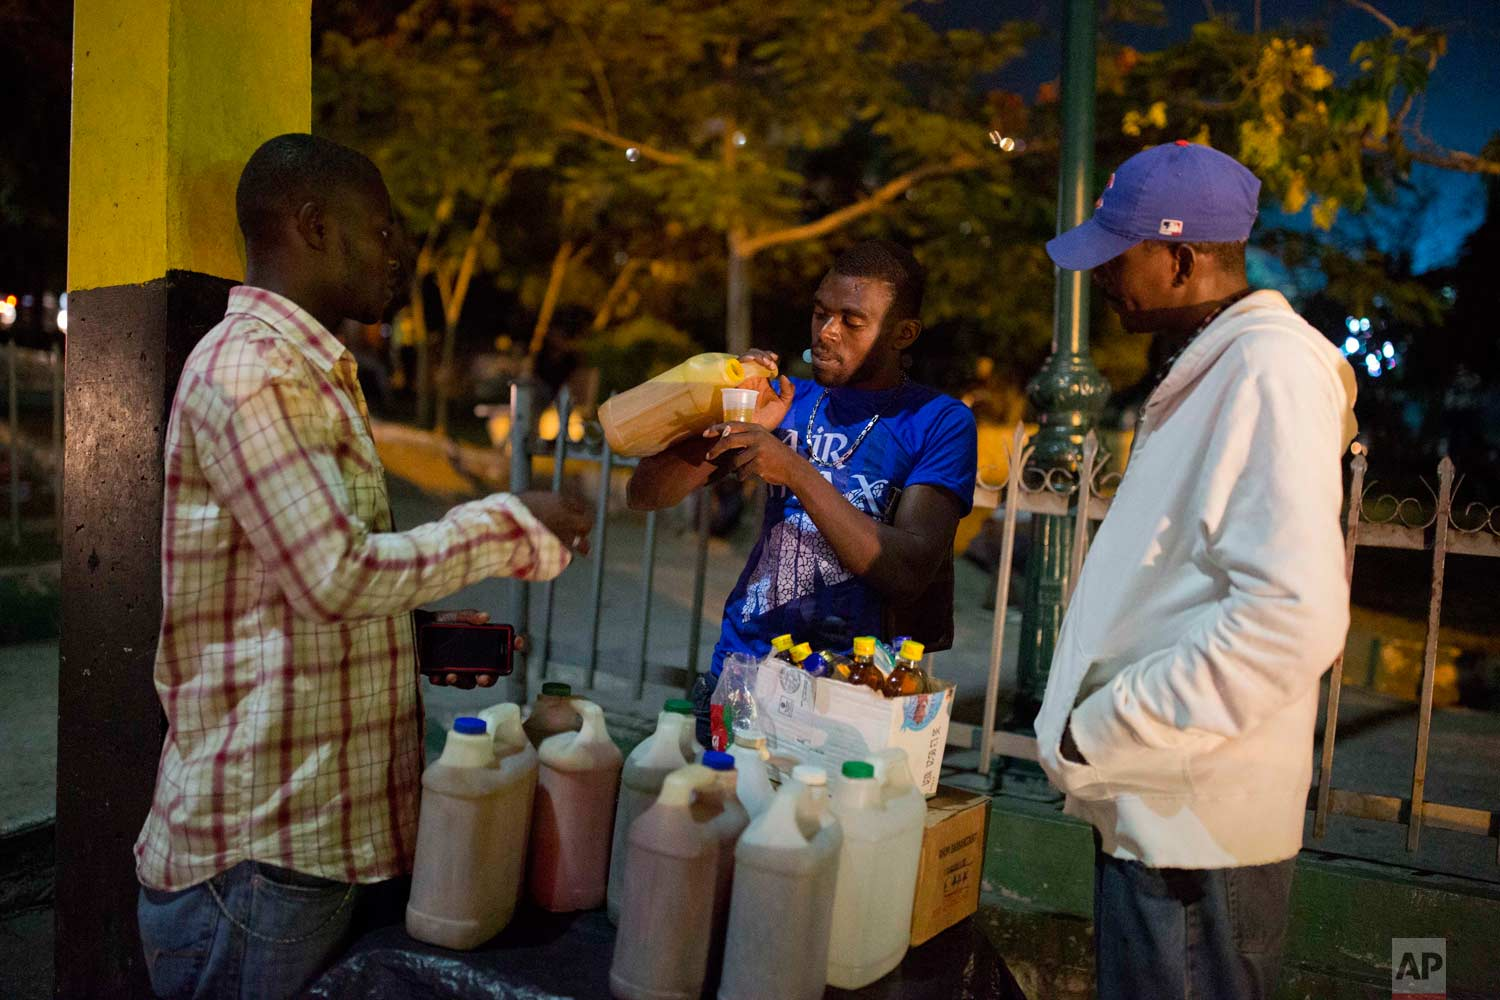 In this June 23, 2017 photo, Smith Nazon, 29, sells clairin, a sugar-based alcoholic drink, on the sidewalk in Petion-Ville, Haiti. A 1 liter bottle sells for about $1.36 dollars, about one-eighth the price of the least expensive bottle of Barbancourt rum, Haiti's most famous export. (AP Photo/Dieu Nalio Chery)